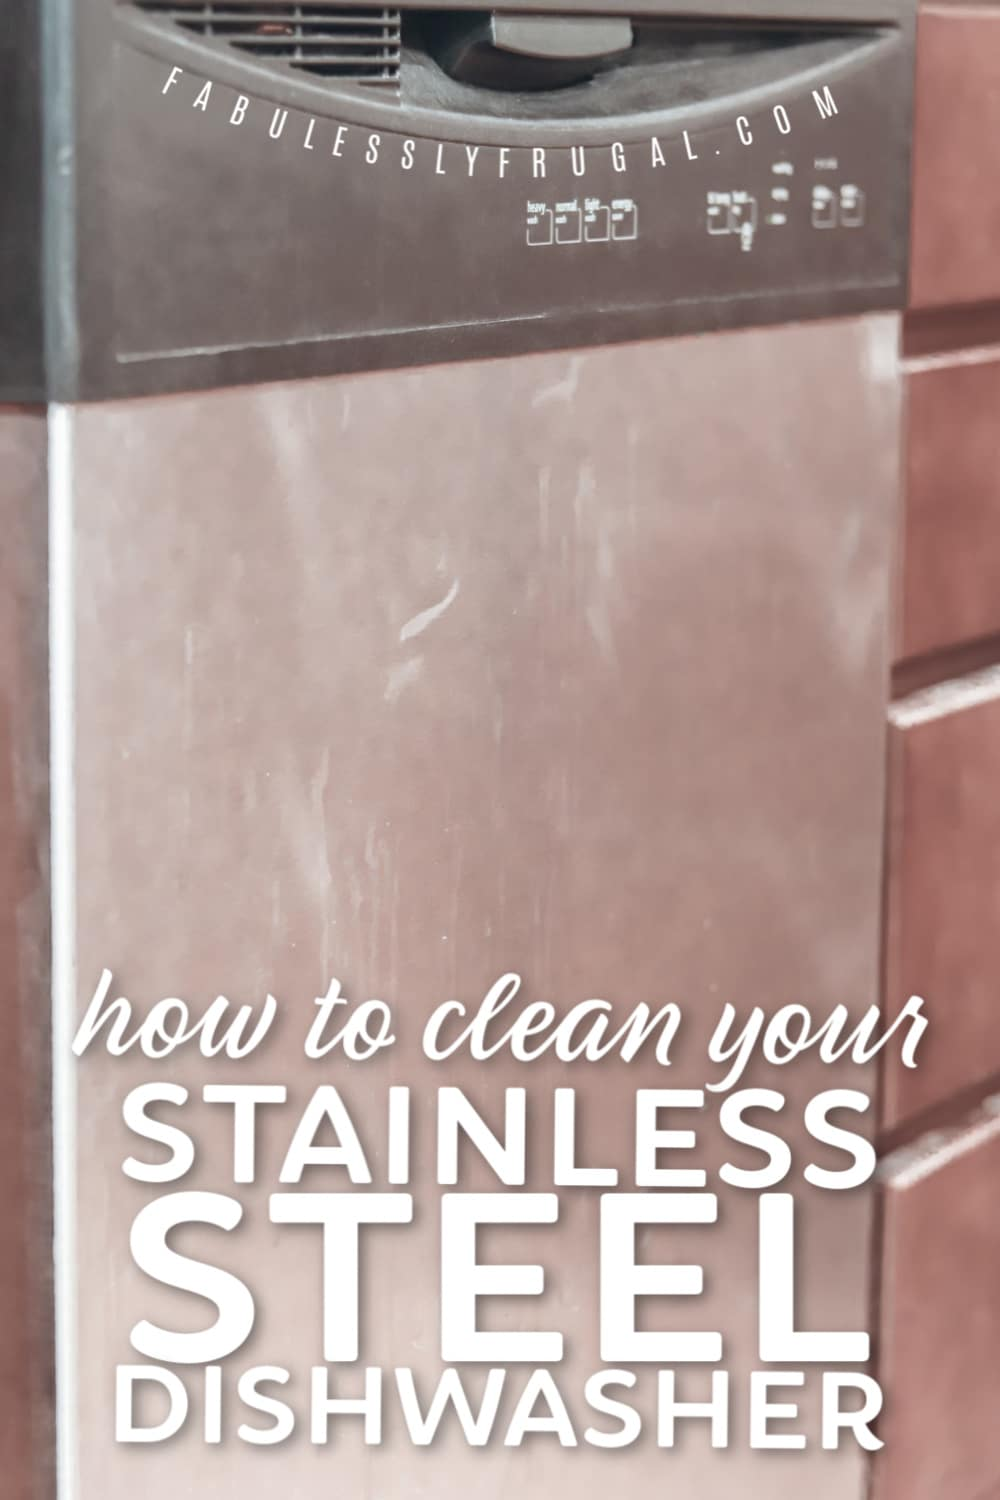 How to clean your stainless steel dishwasher